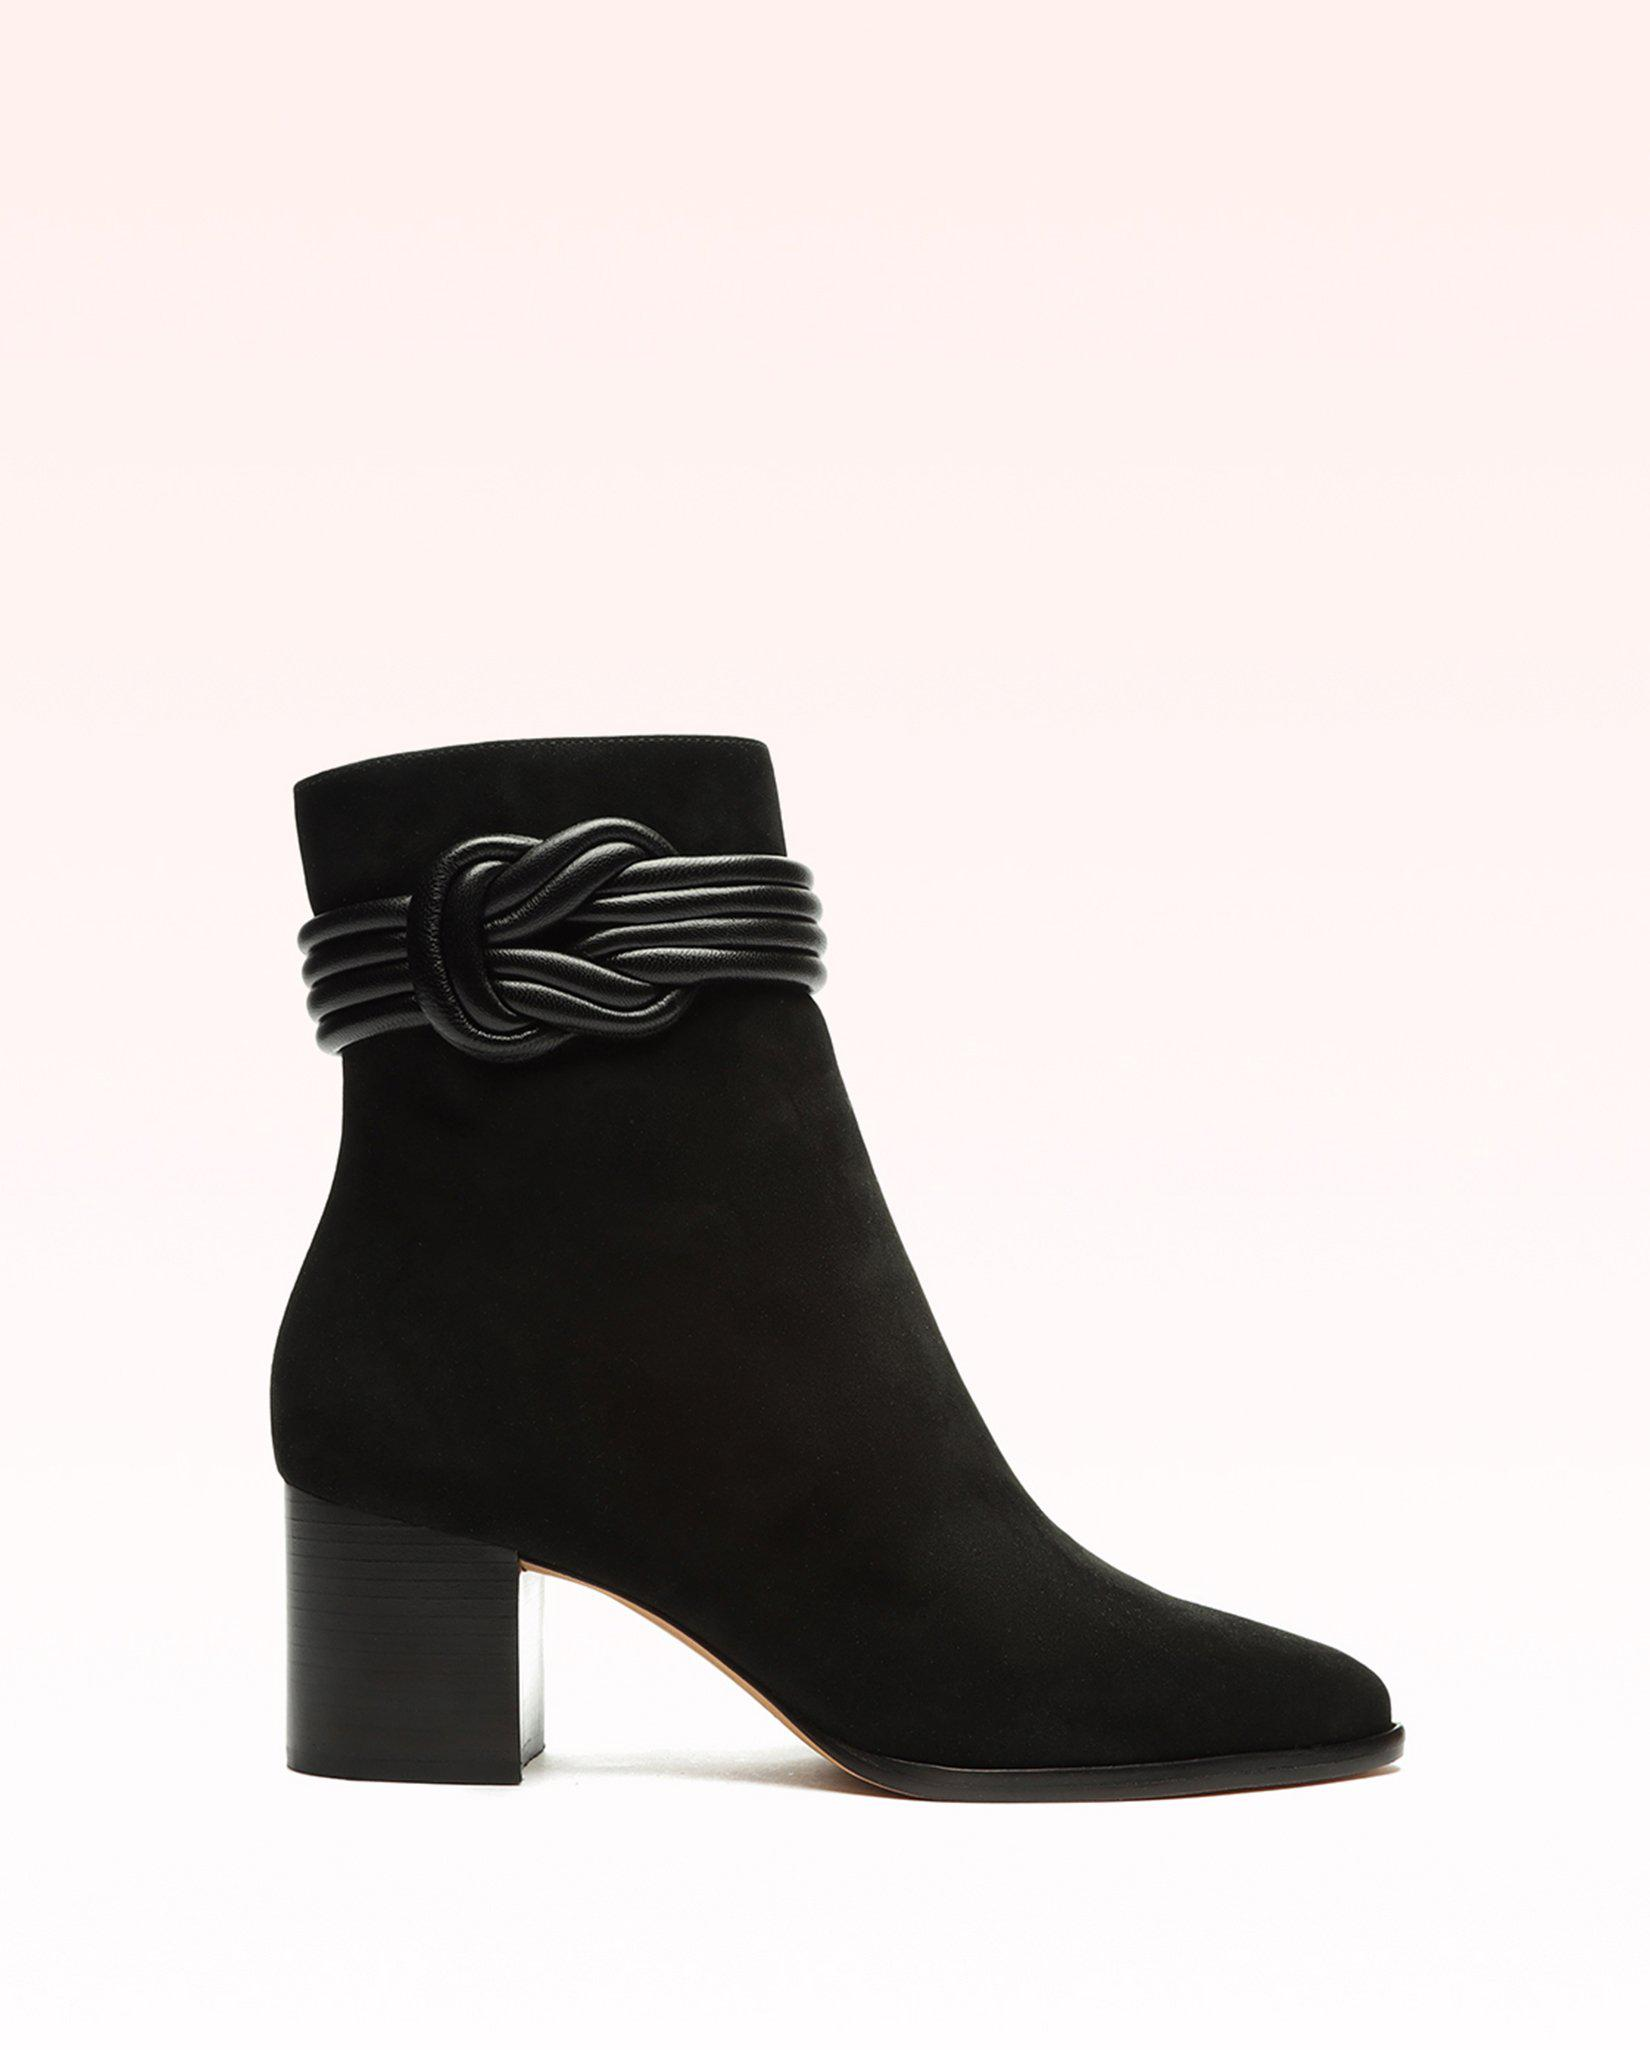 Saddlery Vicky 60 Suede & Nappa Leather Bootie